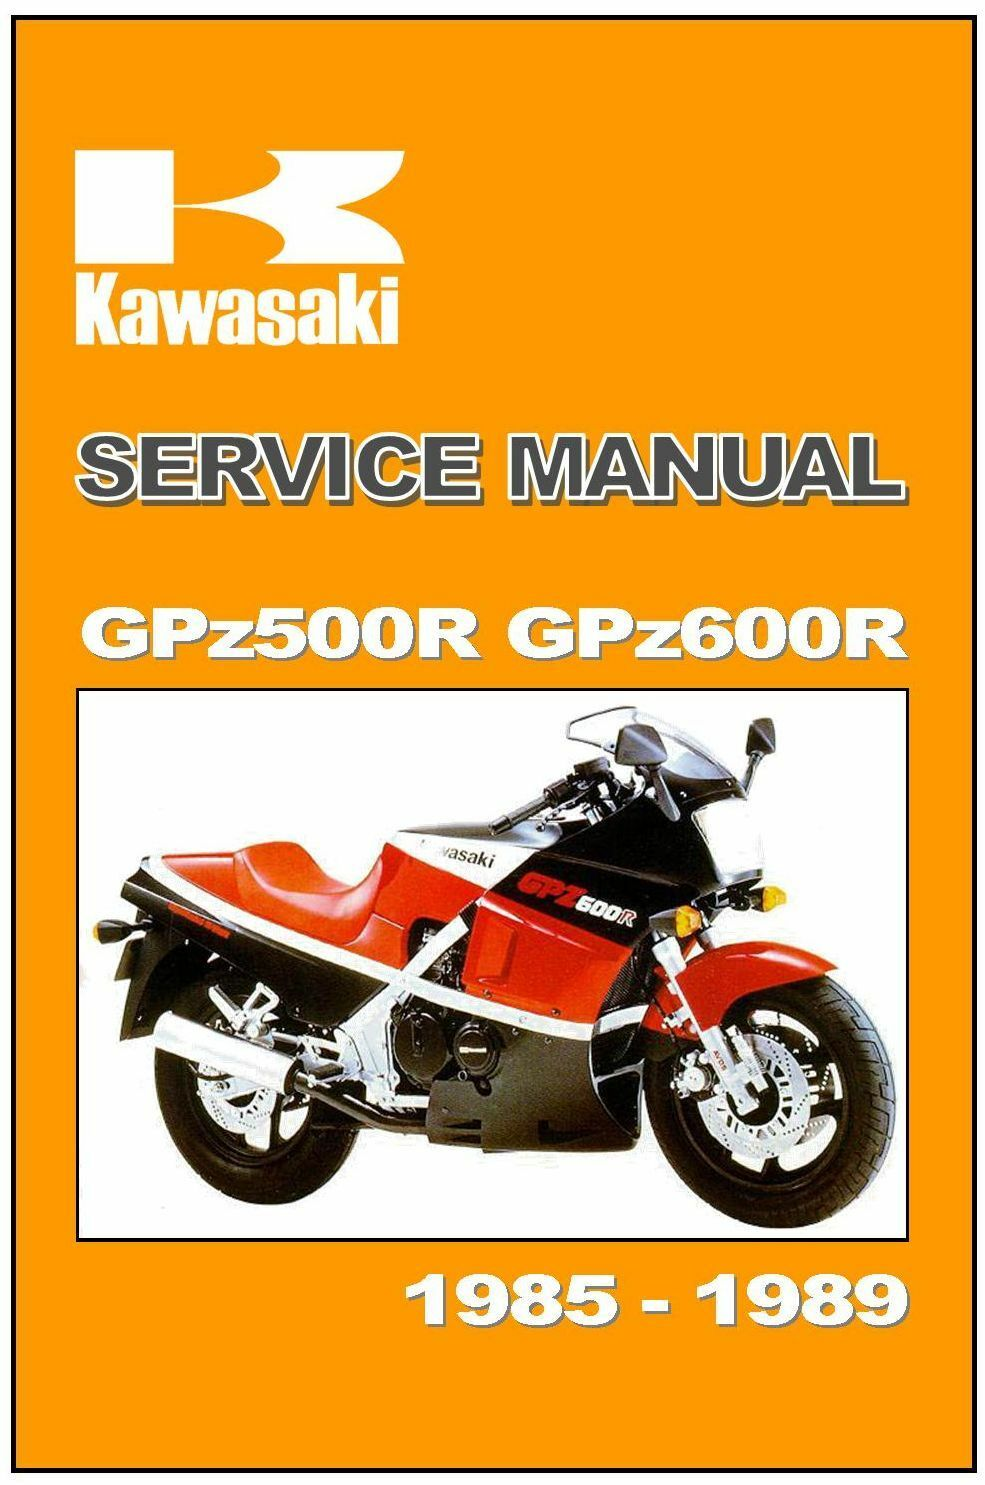 KAWASAKI Workshop Manual GPz600R ZX600 GPz500R ZX500 1985 1986 1987 1988 &  1989 1 of 6Only 1 available ...